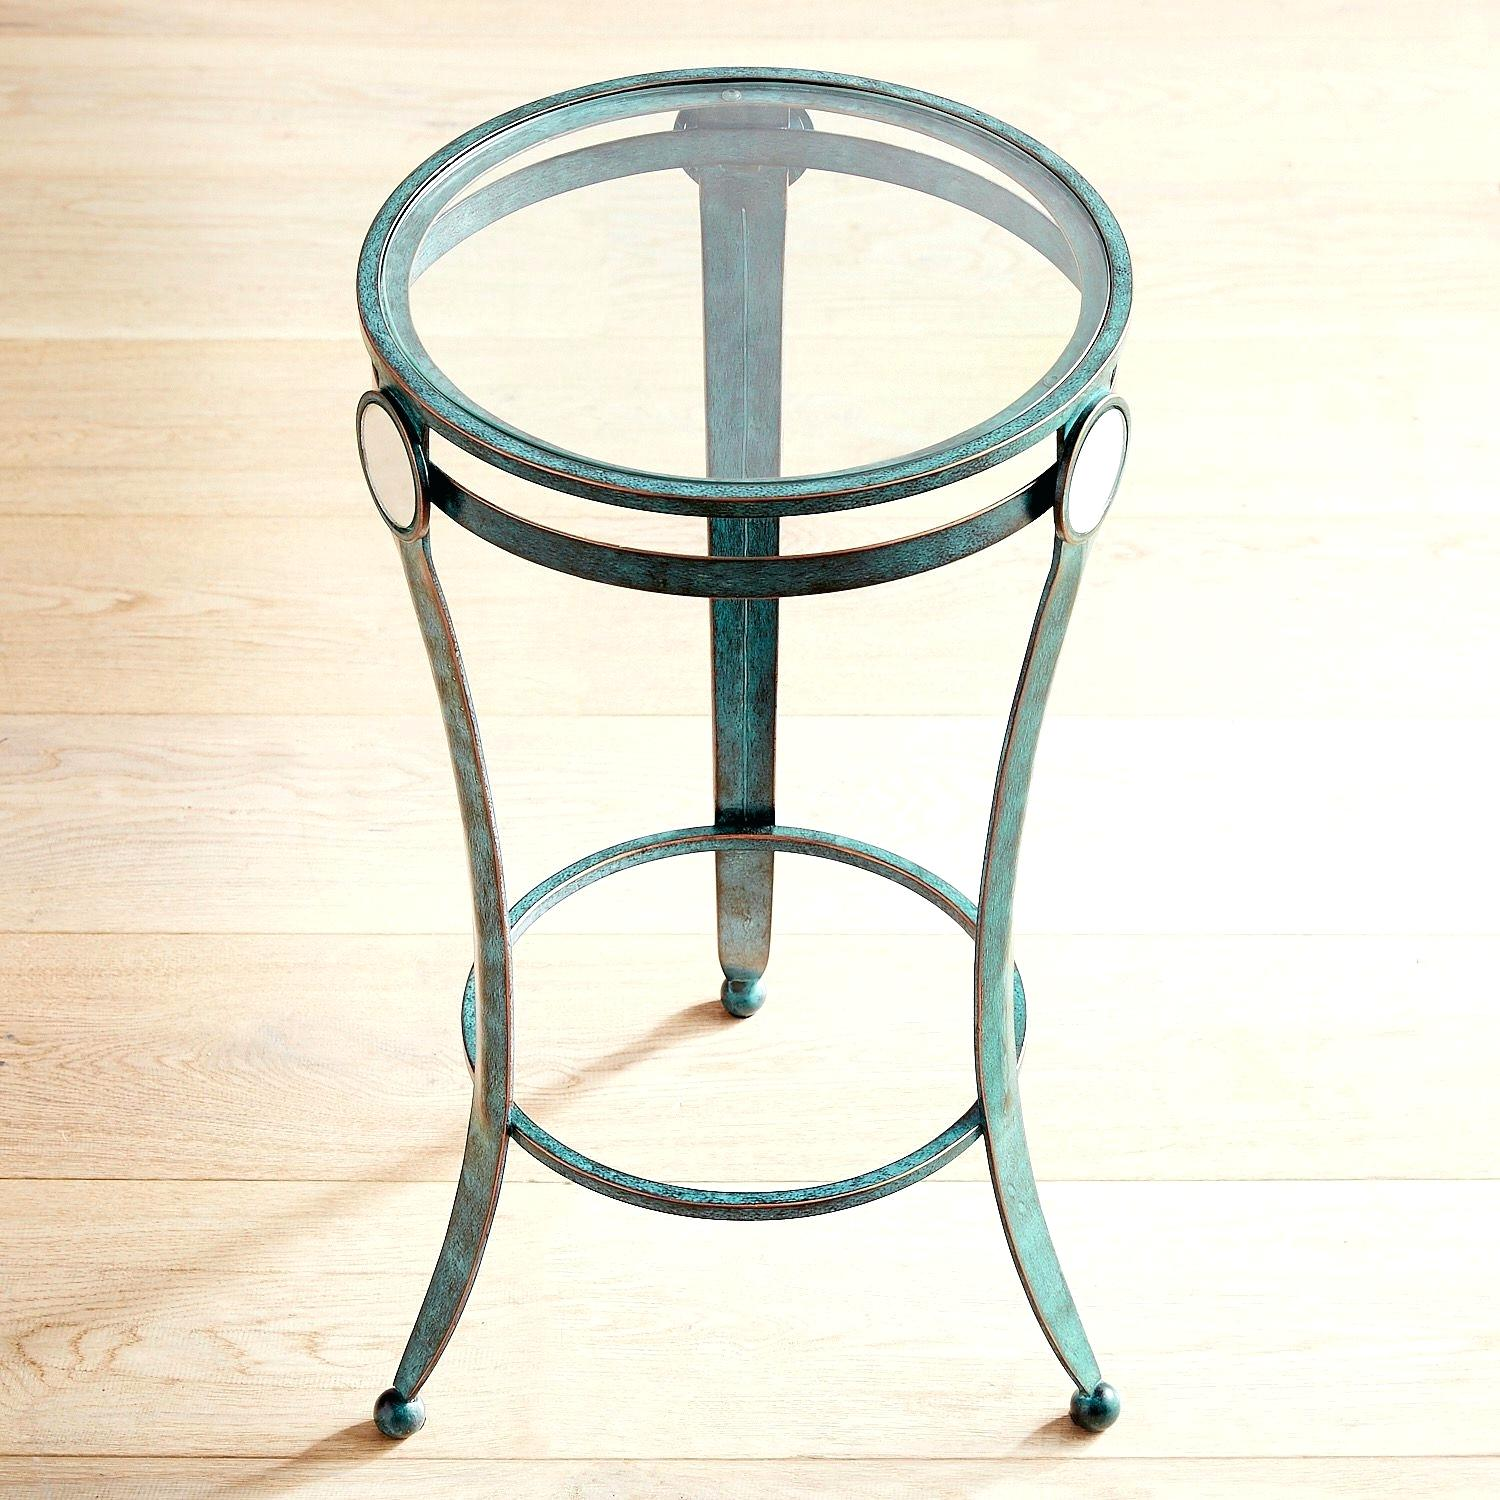 teal and black table decorations blue accent tables living room lamp base iron pier imports one lamps that use batteries insulated ice bucket glass mirror nightstand cool retro